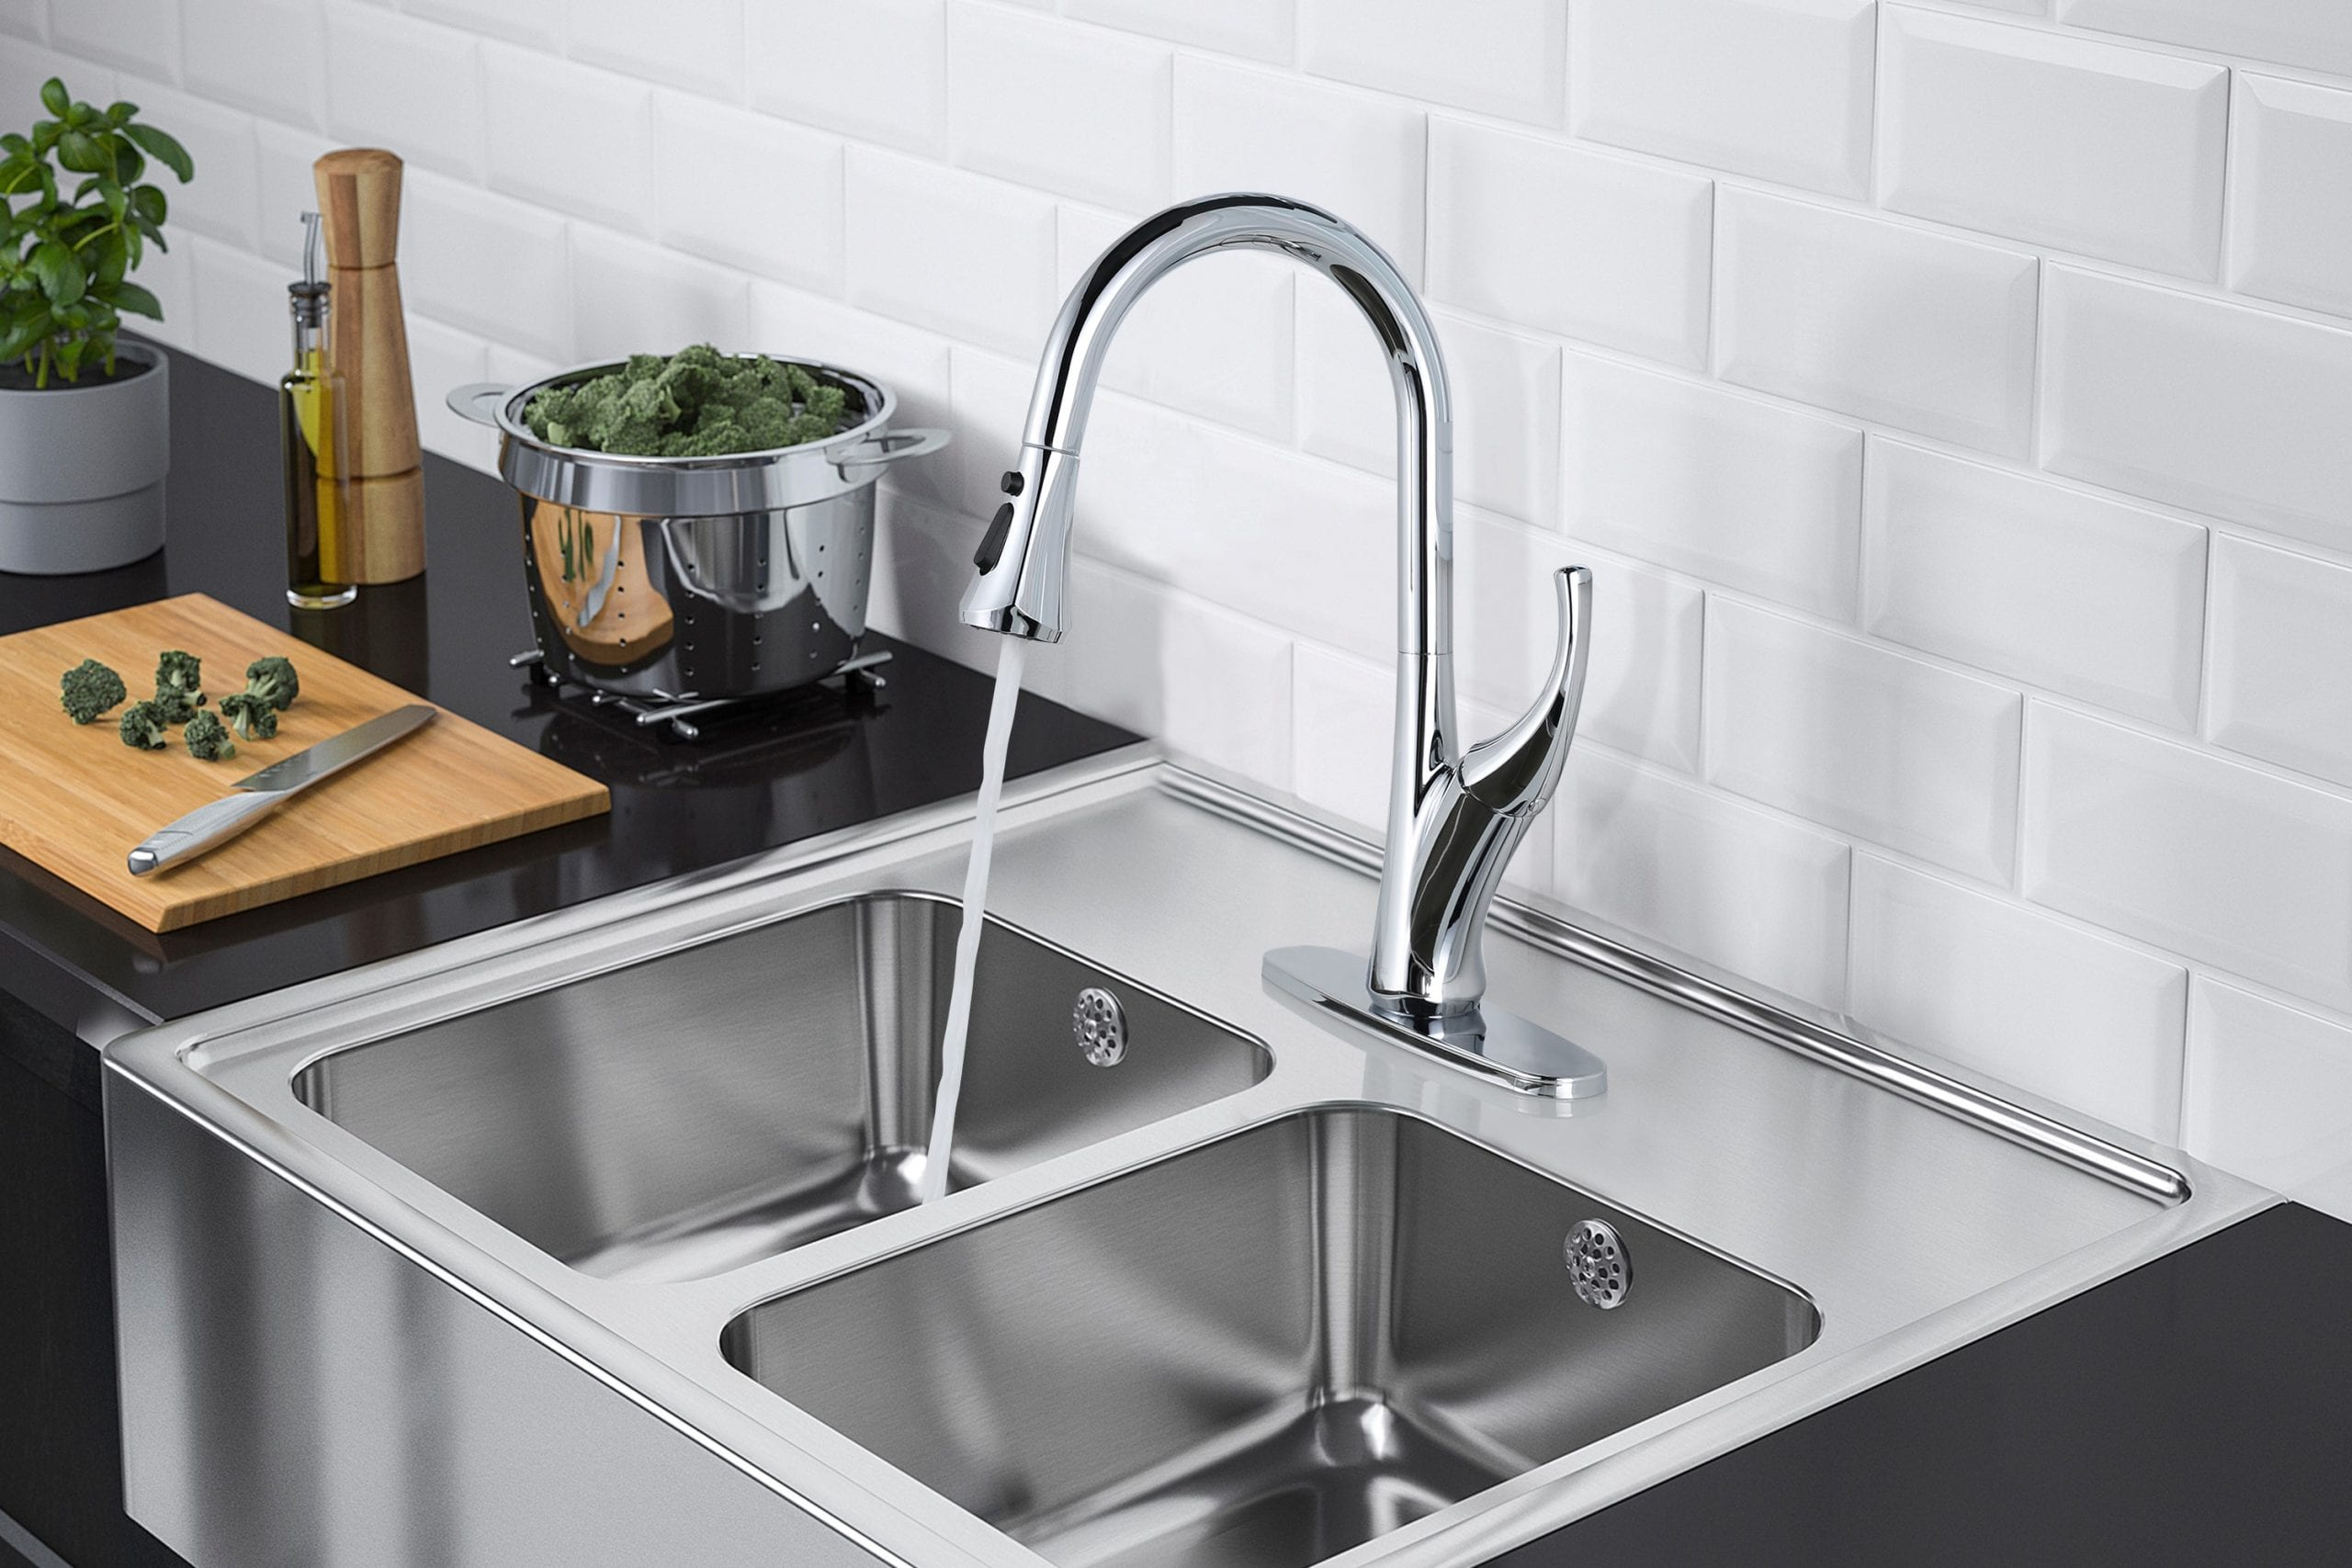 How Much Should I Spend on My Kitchen Faucet